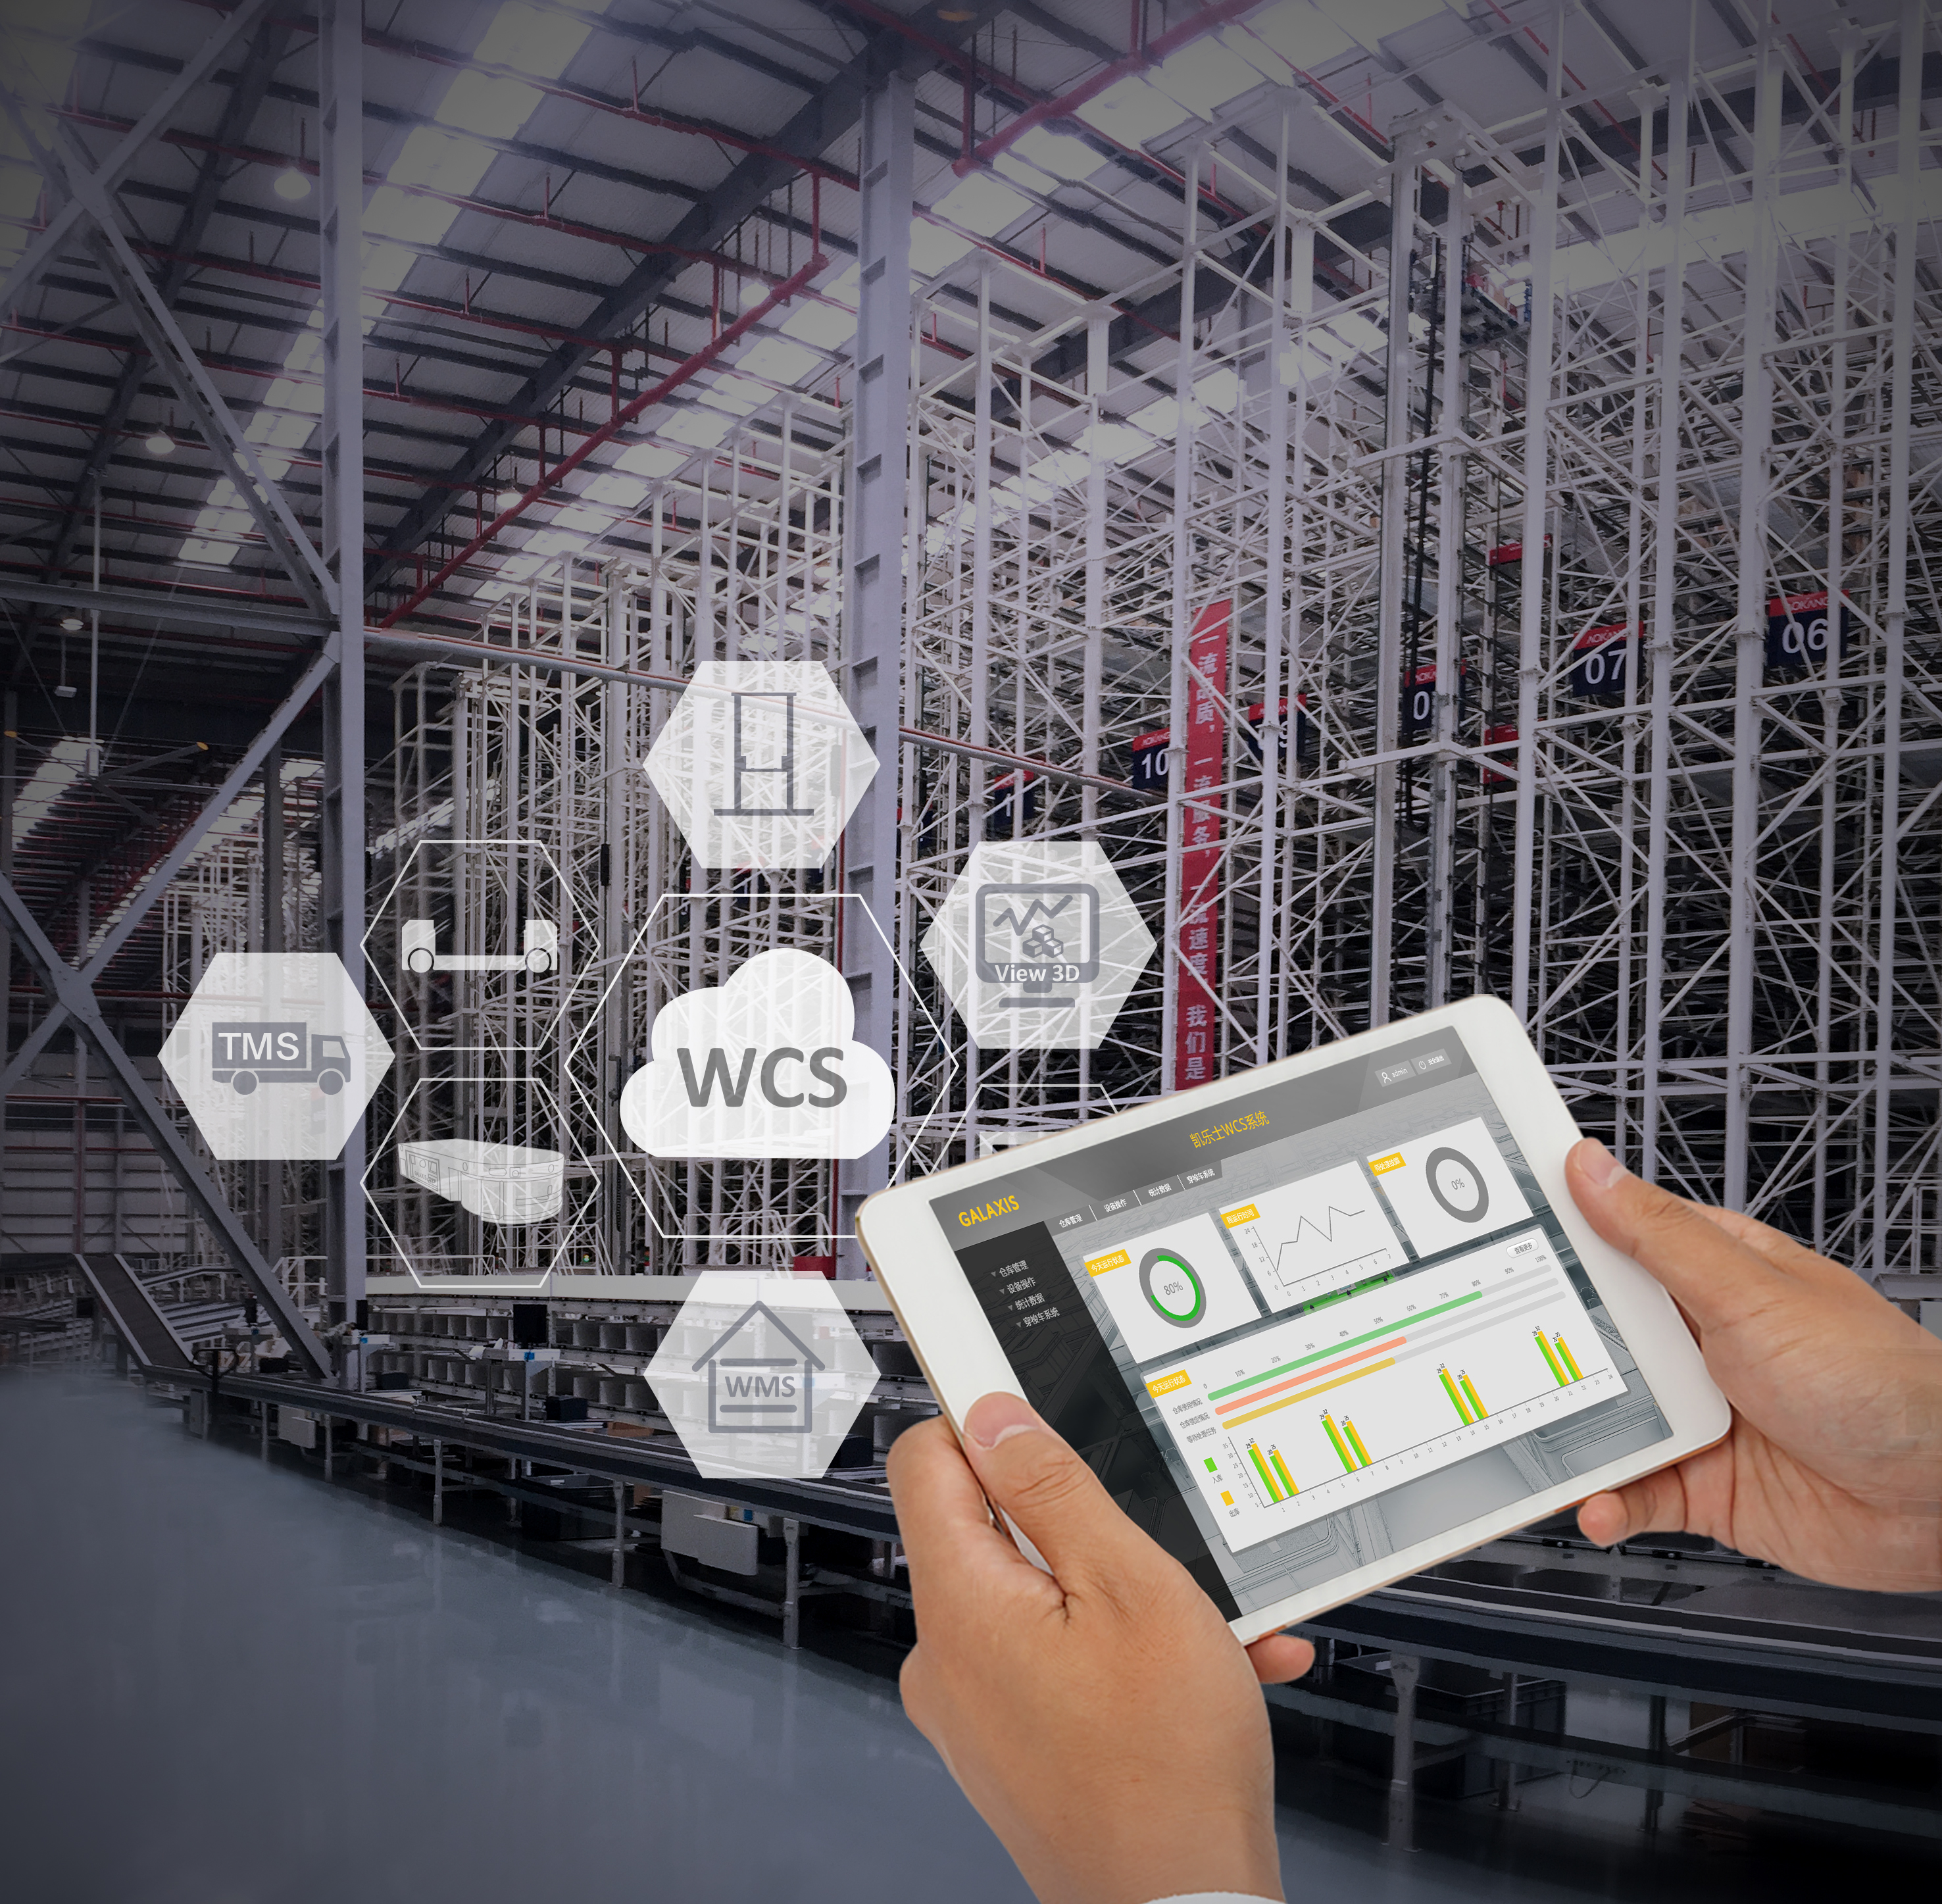 Warehouse Control System (WCS)